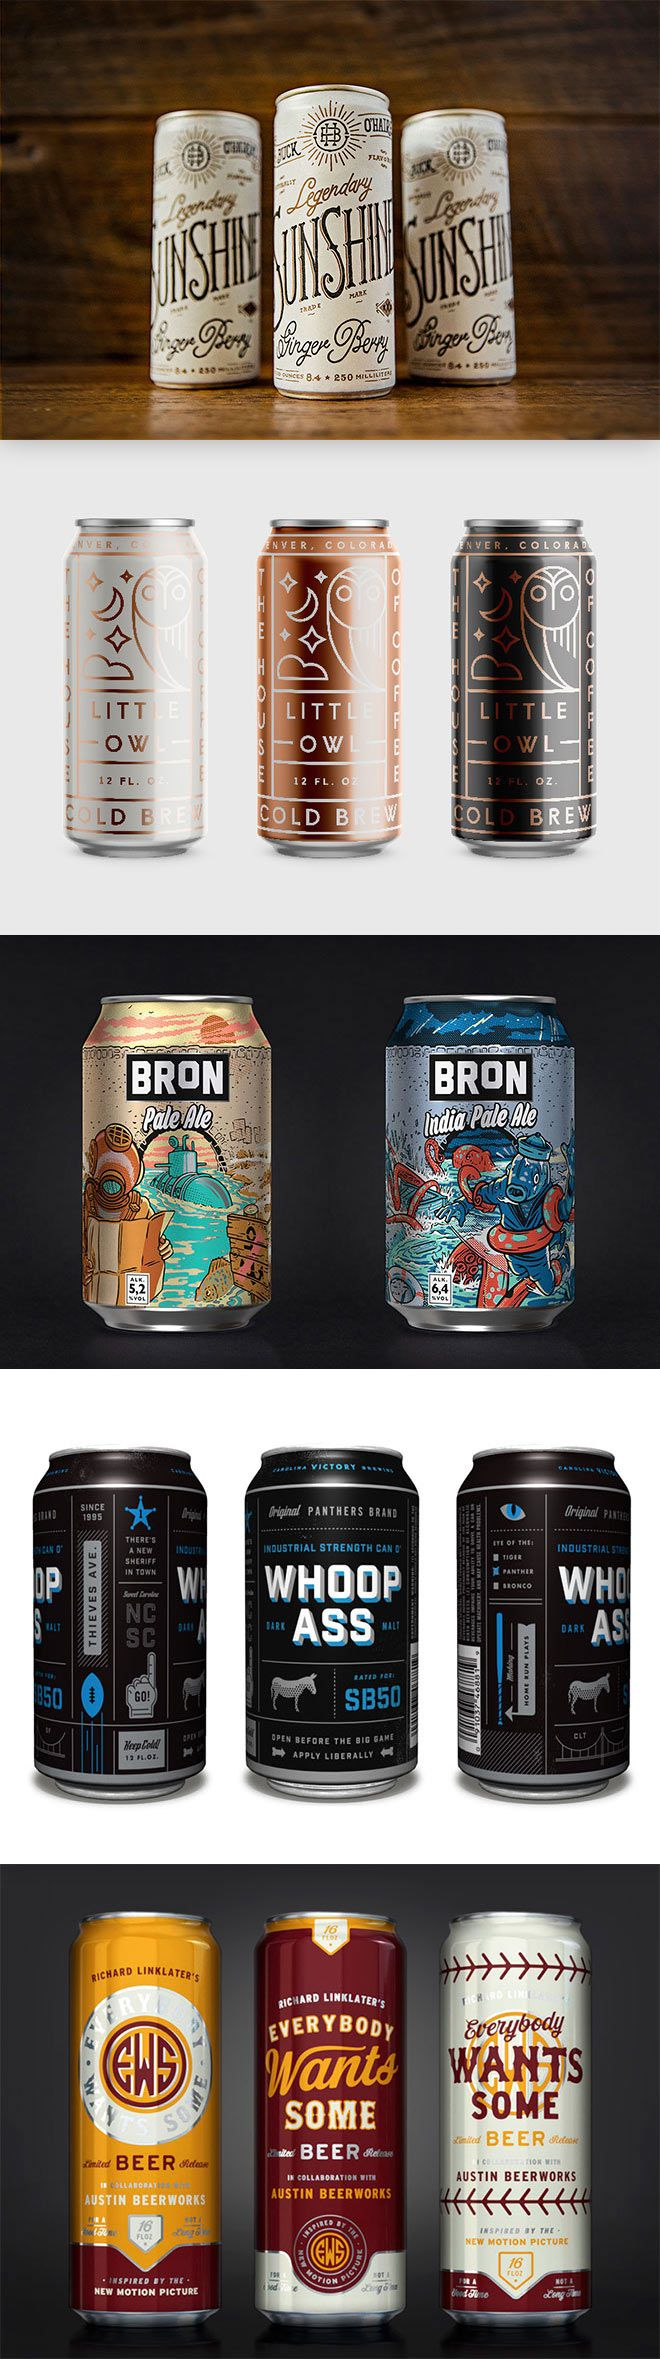 The explosion of the craft beer scene over recent years has given graphic designers a great opportunity to create artwork for beer cans. Unlike the mainstream brands, independent microbreweries can be more experimental with their branding, which leads to some really cool packaging designs for their products. In today's showcase I present 40 of the …